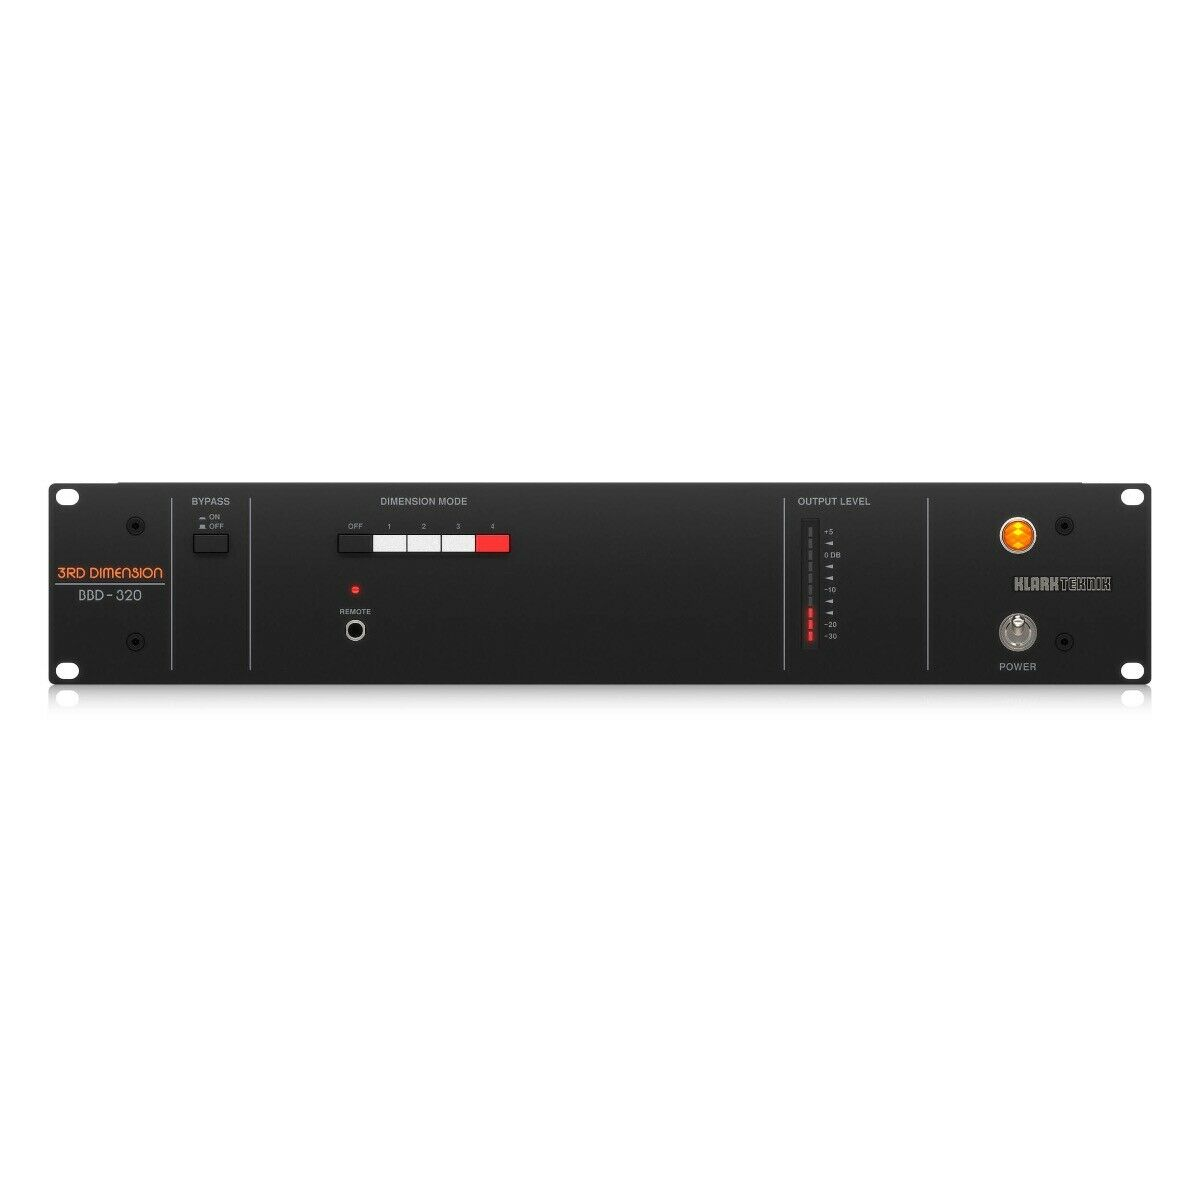 KLARK TEKNIK 3RD DIMENSION BBD-320 Analog Multi-Dimensional Signal Processor. Buy it now for 149.00